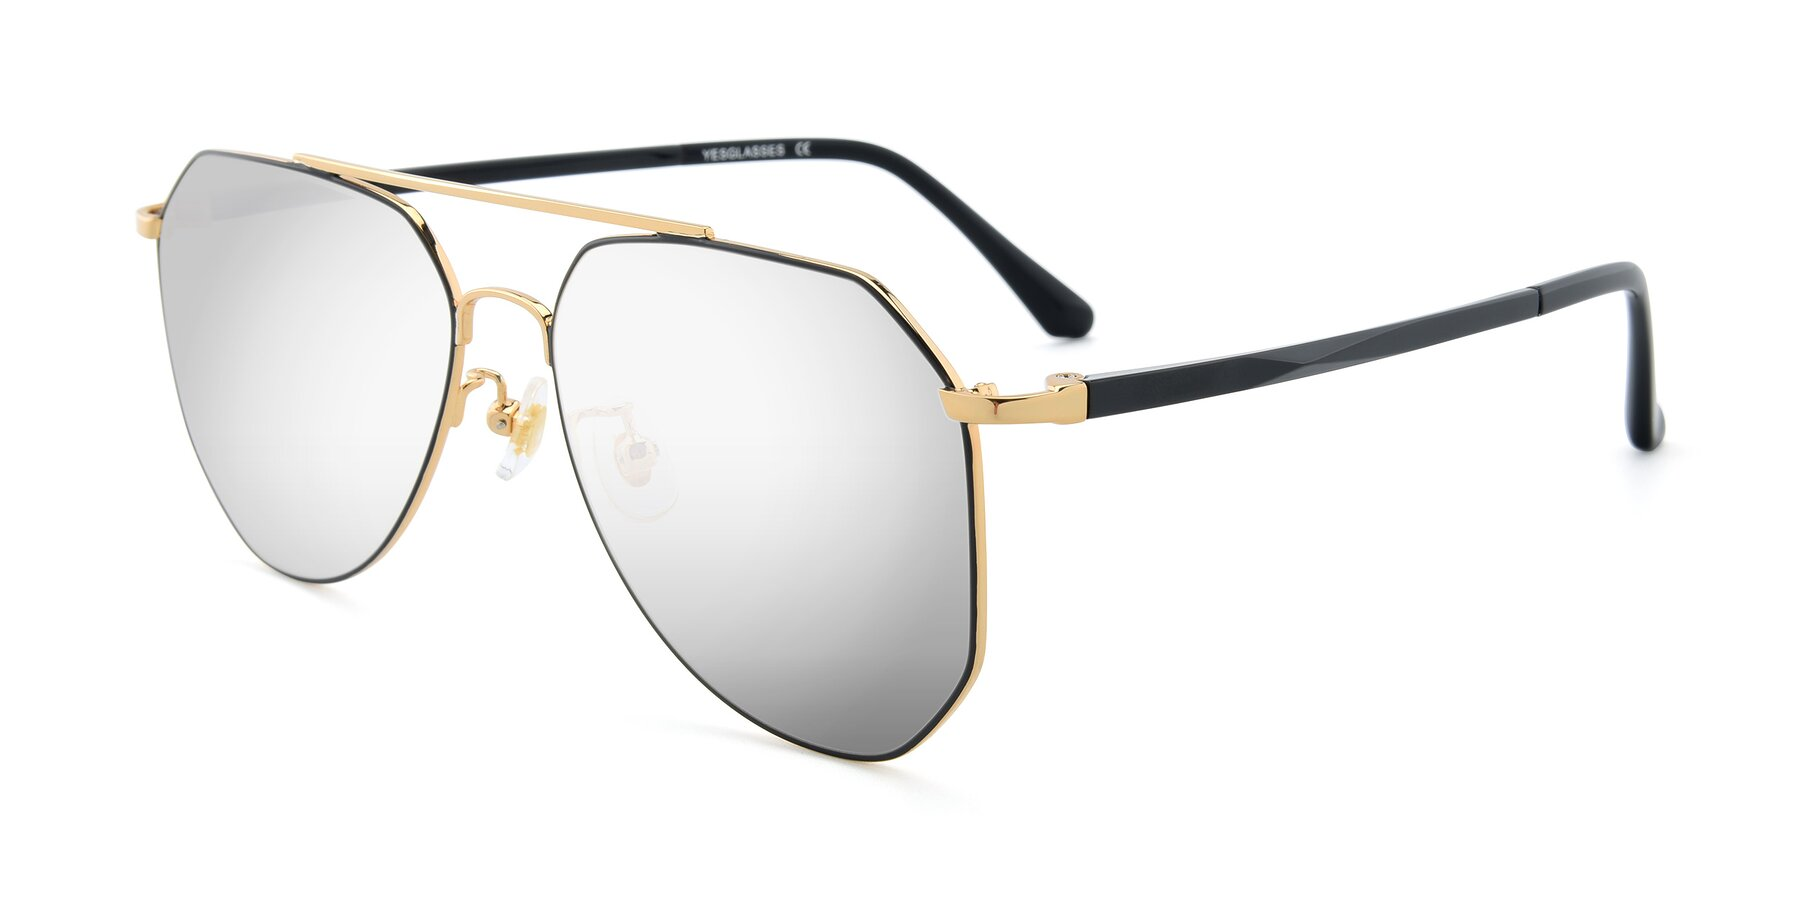 Angle of XC-8040 in Black/ Gold with Silver Mirrored Lenses